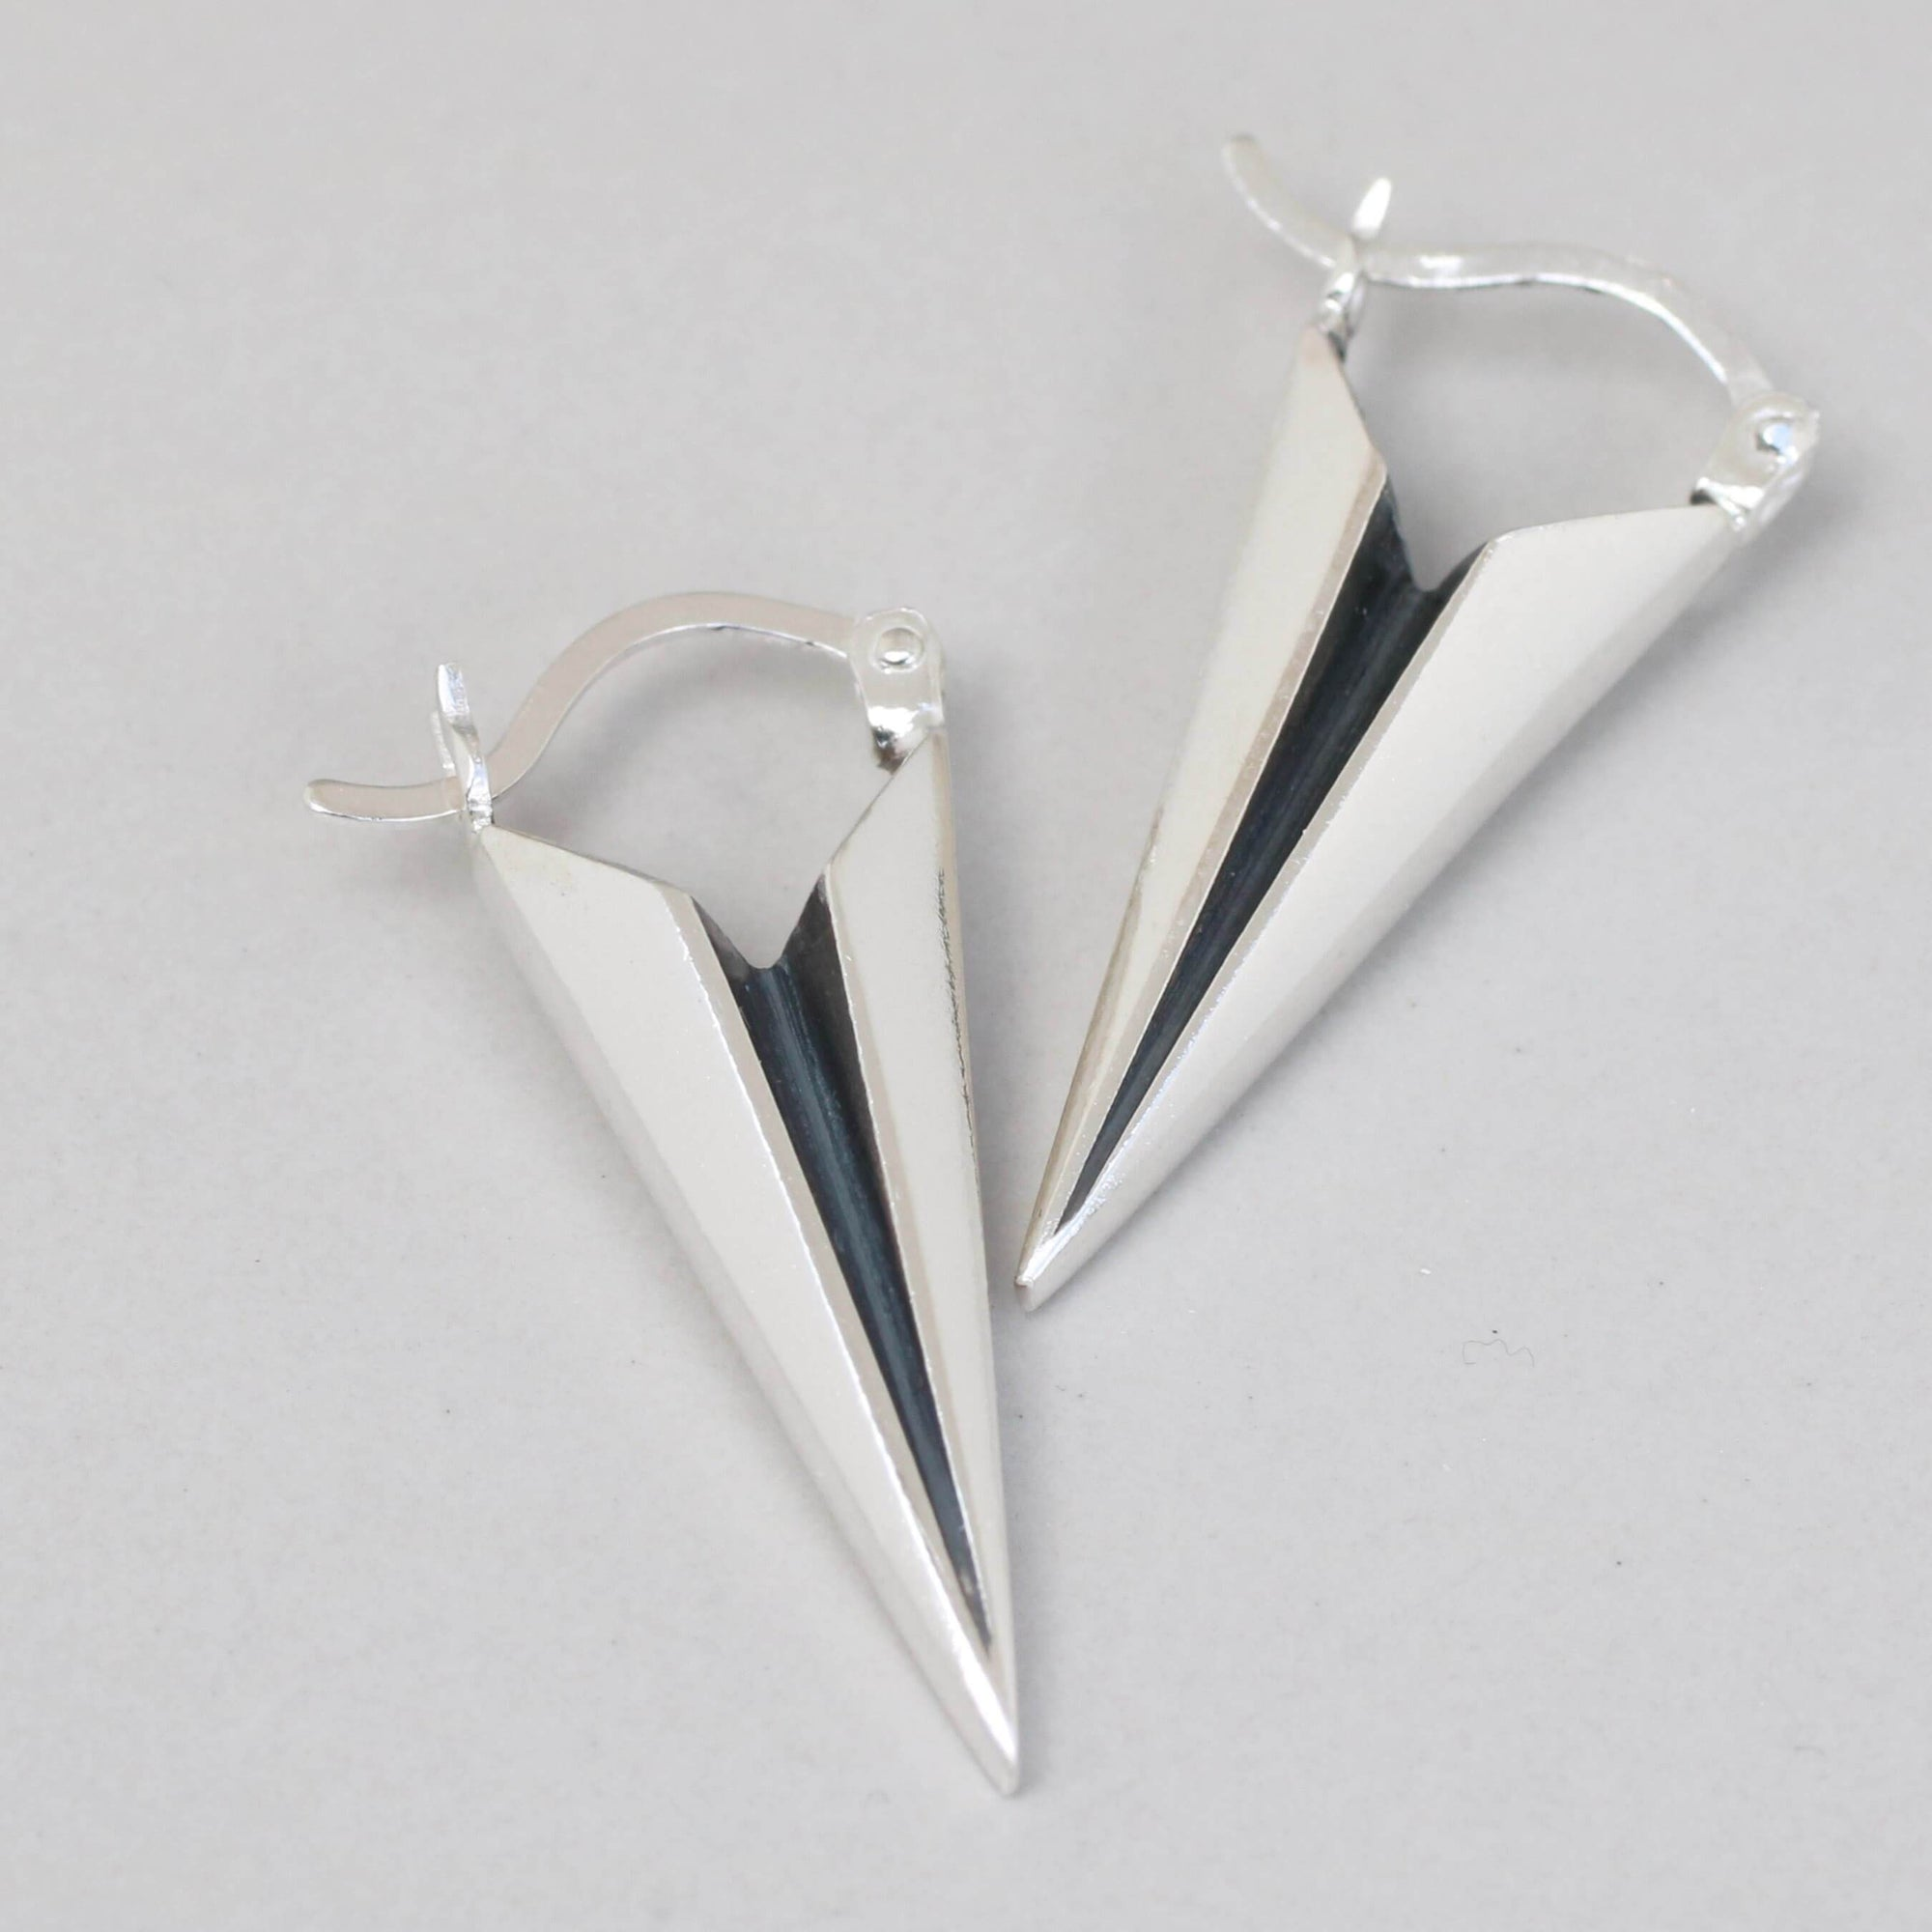 Deco Spike Earrings - Silver Creole hoops